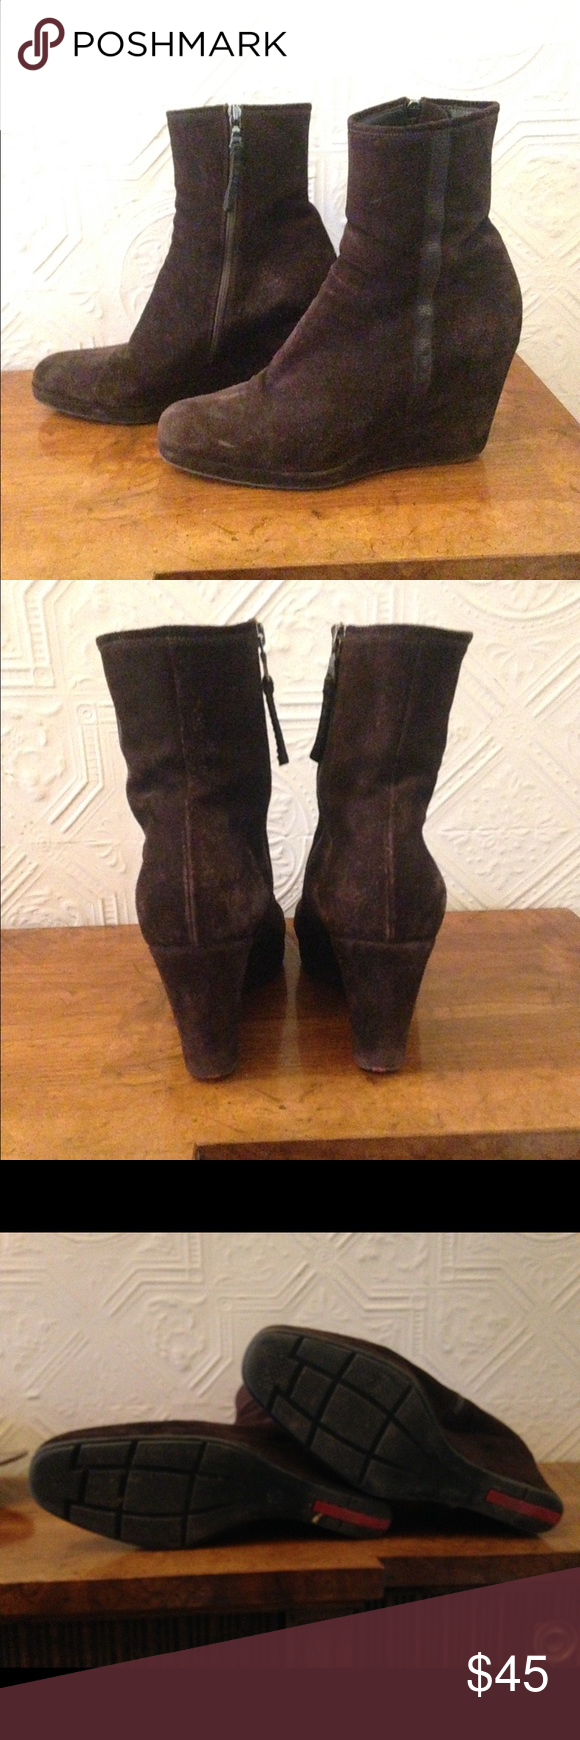 Oldie but goodie Prada wedge booties Haven't worn these in a while but they are still stylish and comfortable. The chocolate brown suede has a nice knap but the picture makes it look pretty weathered. These look great with a dress or jeans. I cannot find the size but I am pretty sure size 40 since that's my size and these fit well. Prada Shoes Ankle Boots & Booties